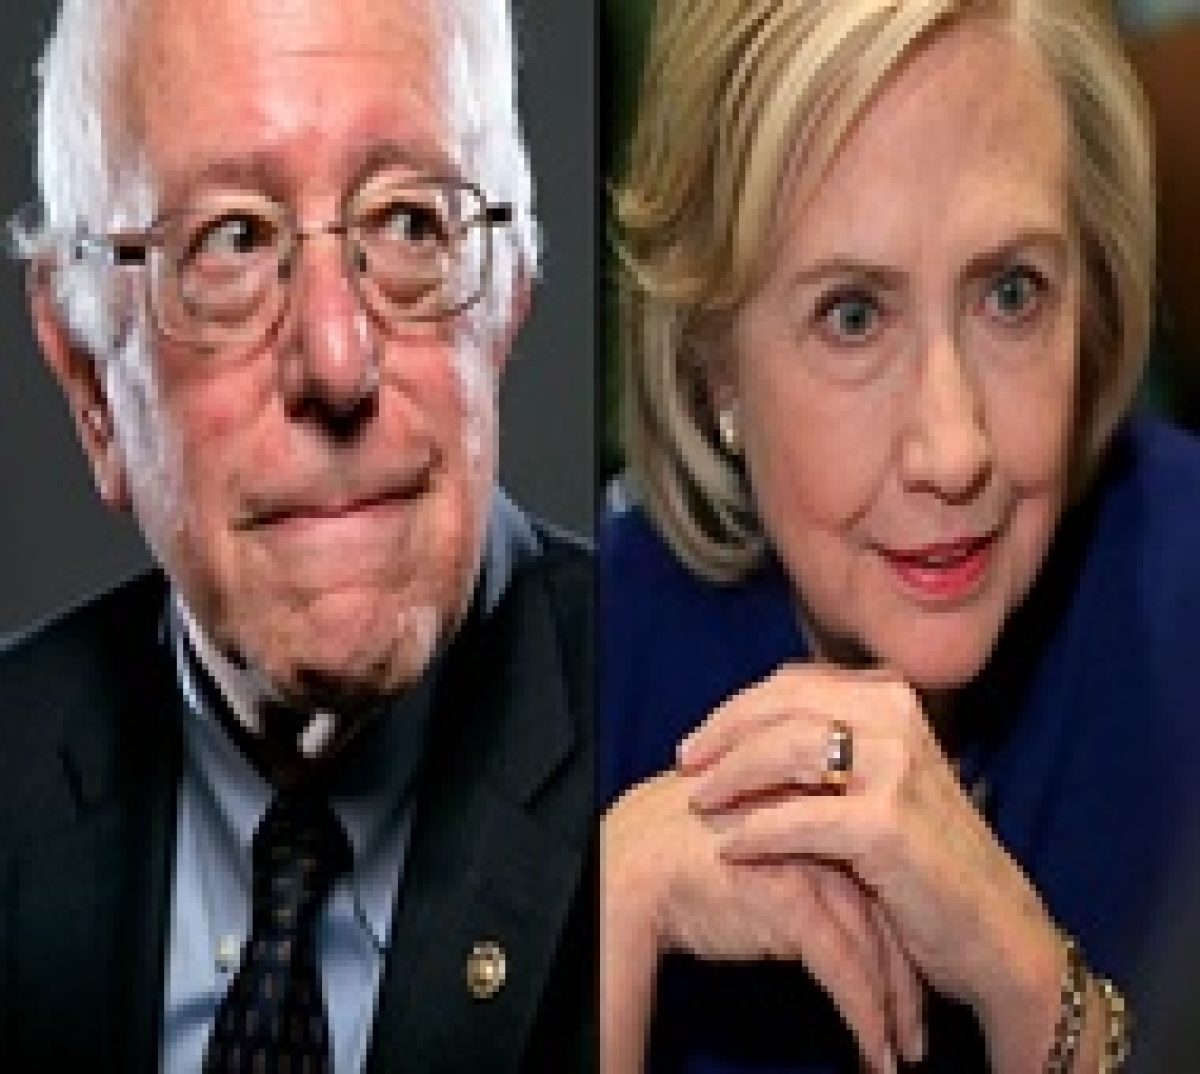 Indian-American leads research team against Clinton, Sanders